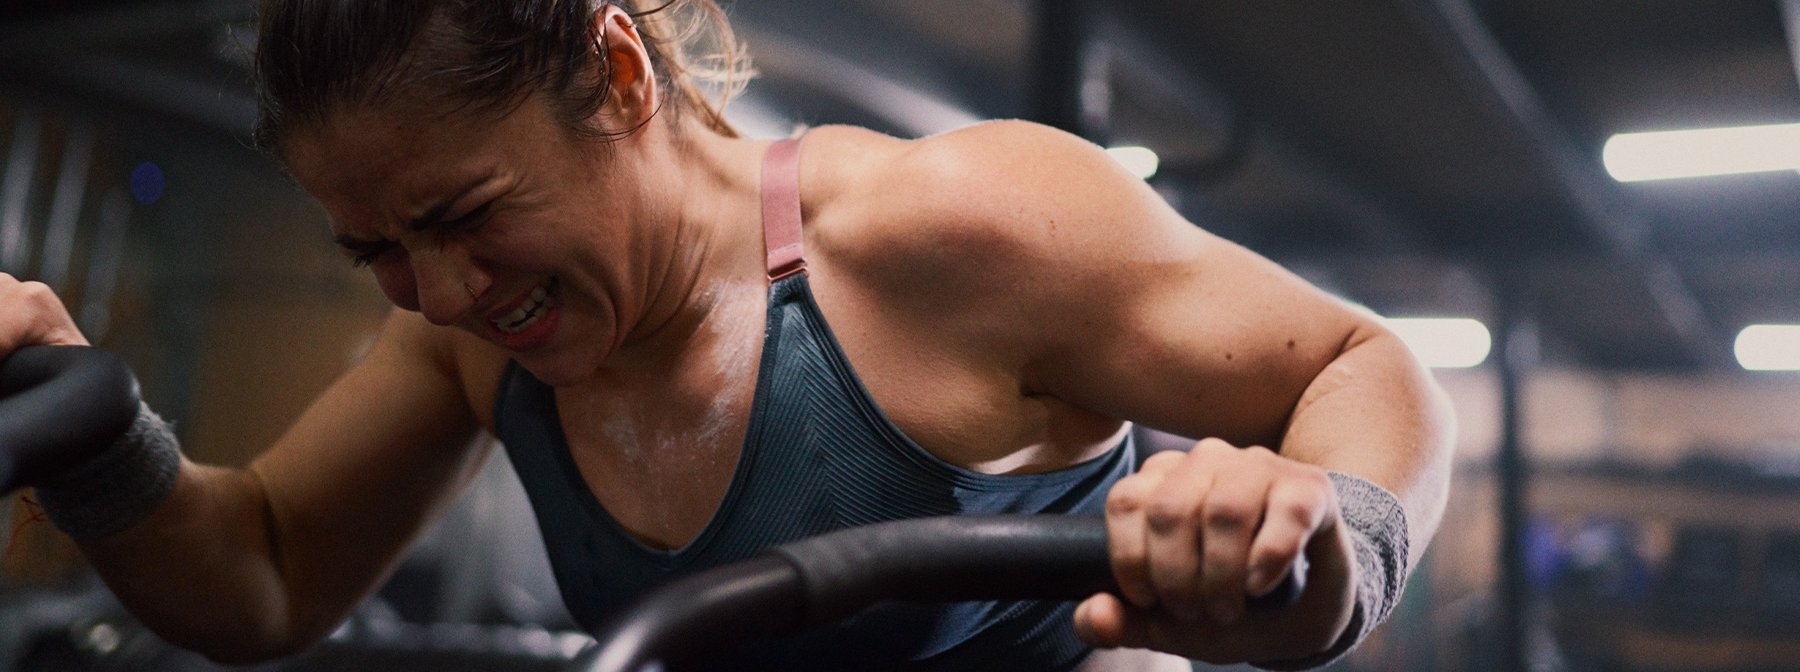 Make Lockdown Work For You — How Our Athletes Have Adapted | Emelye Dwyer